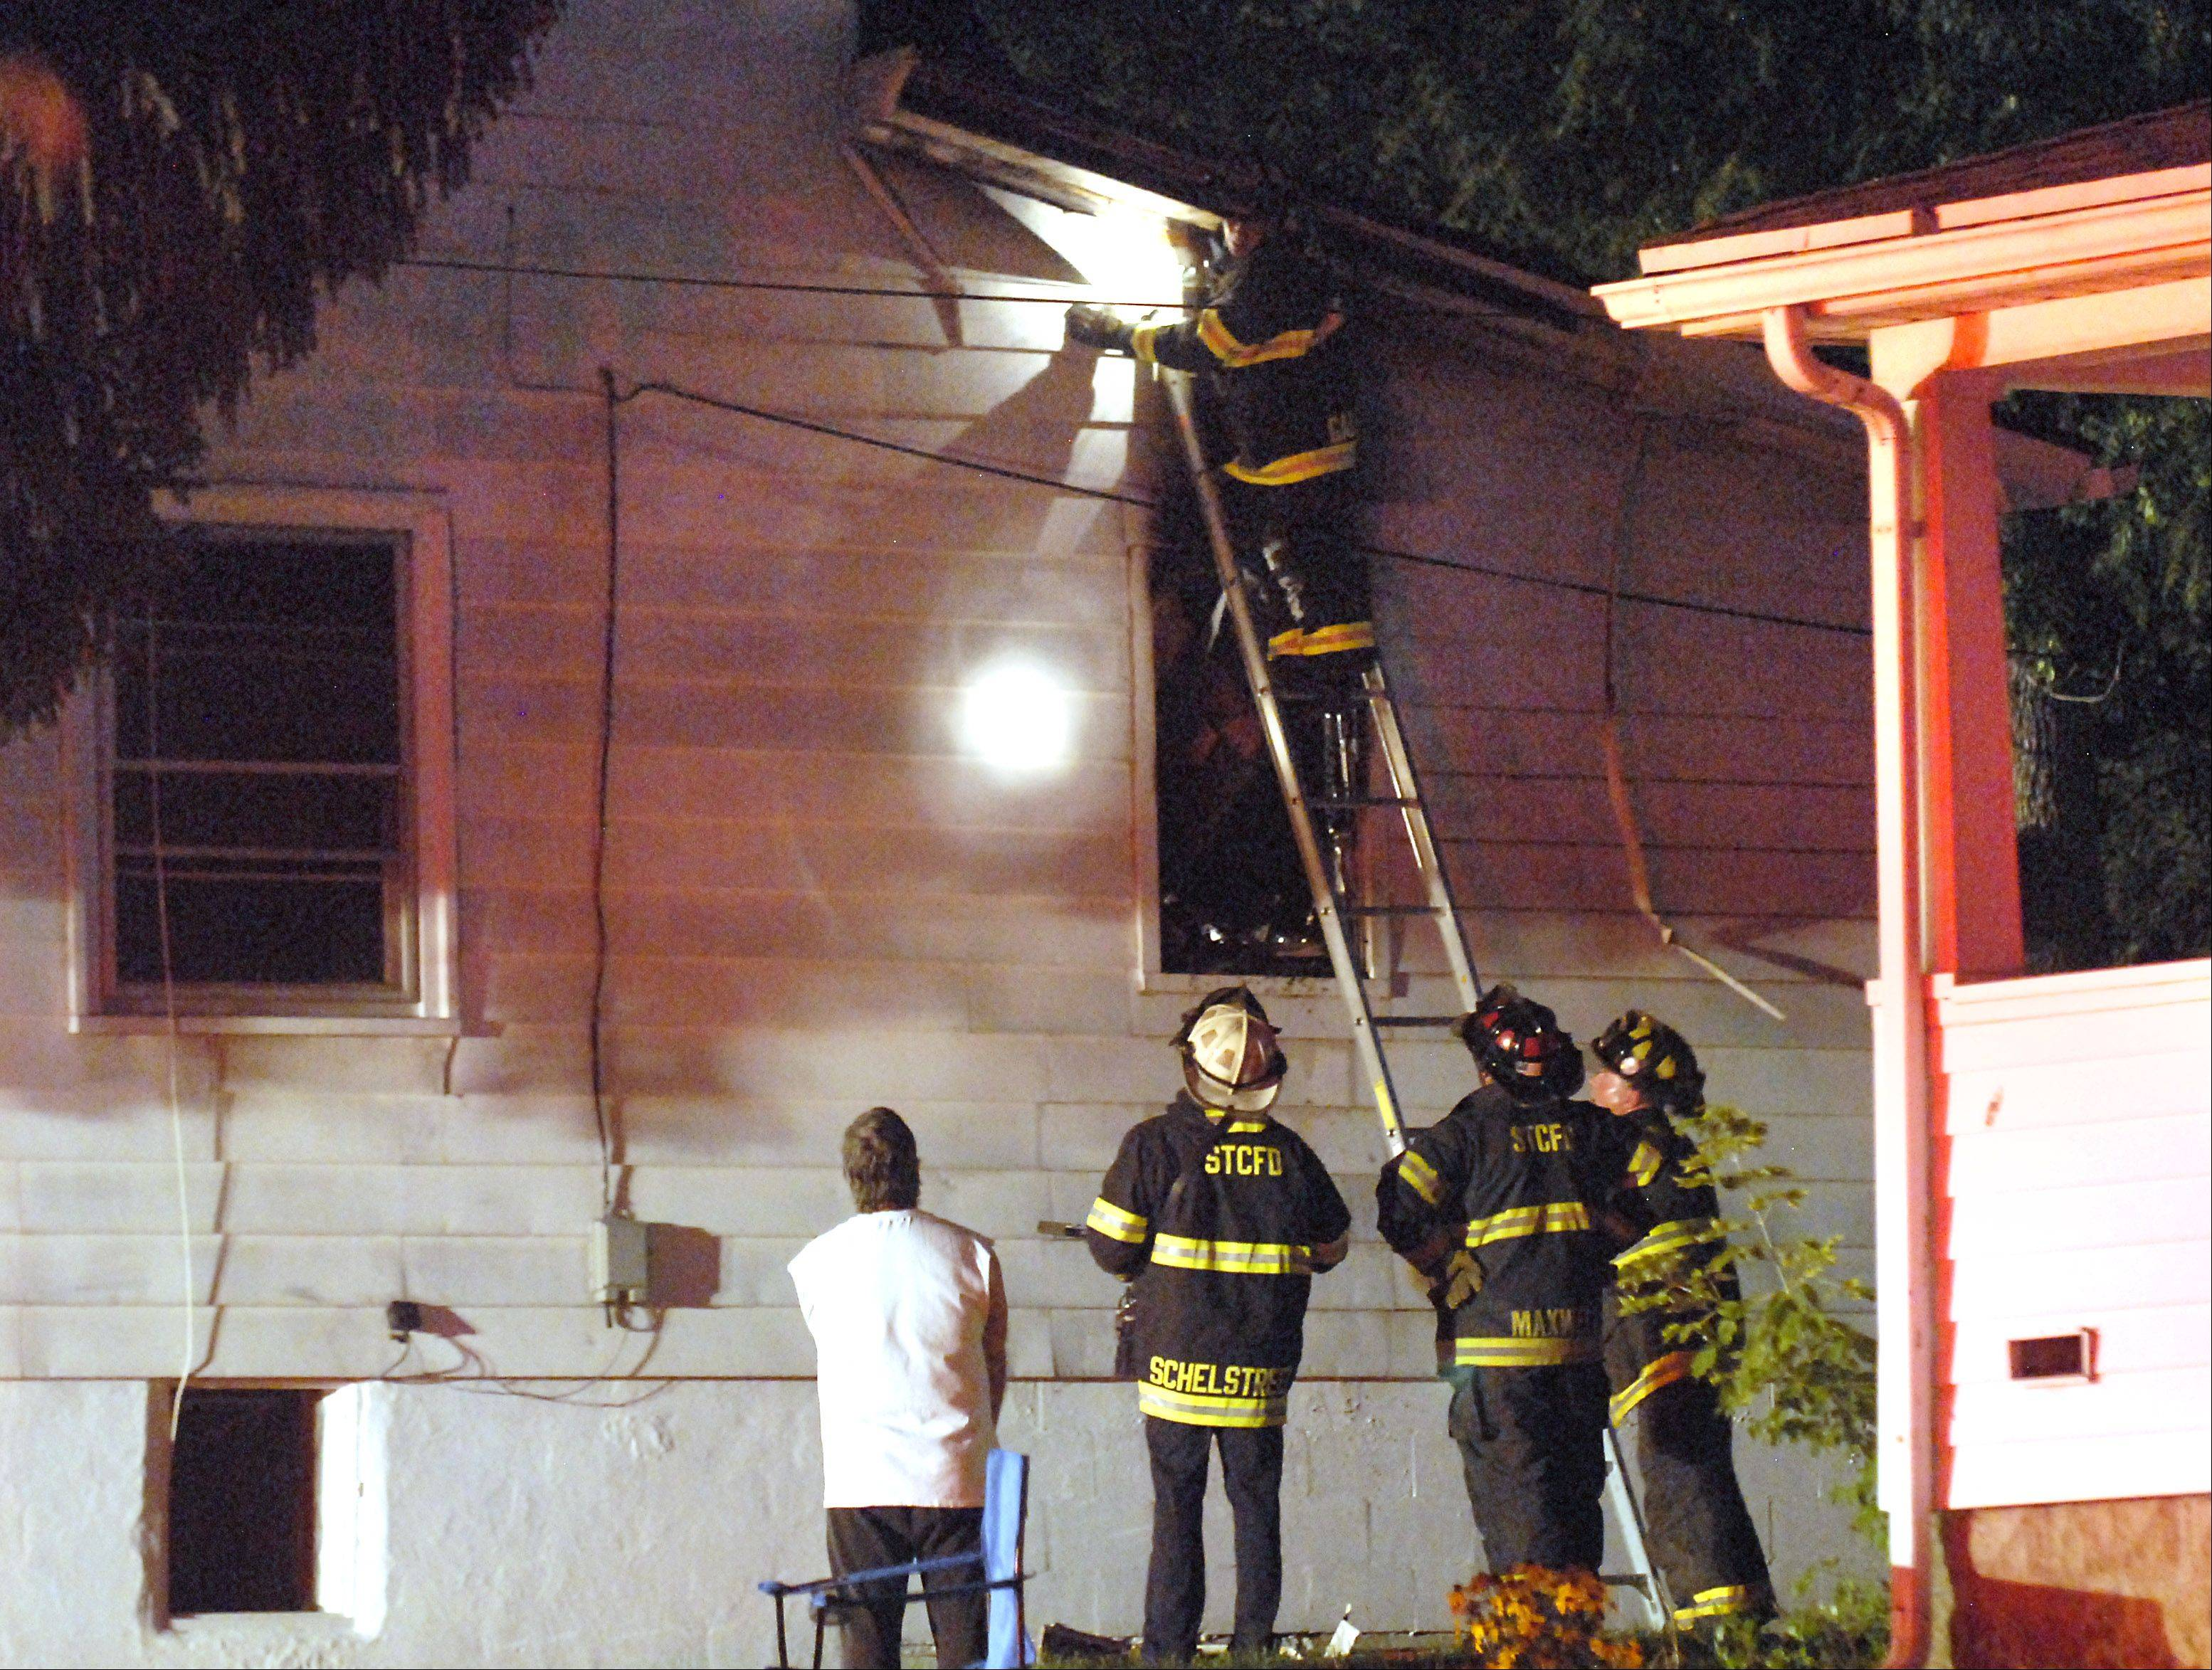 St. Charles firefighters check the roof after extinguishing a house fire on the 0-100 block of North 12th Street in St. Charles Friday night. Several fire departments � including St. Charles, Geneva, Batavia and South Elgin � responded to the fire, which was contained within 30 minutes. No injuries were reported, but the home was left uninhabitable.